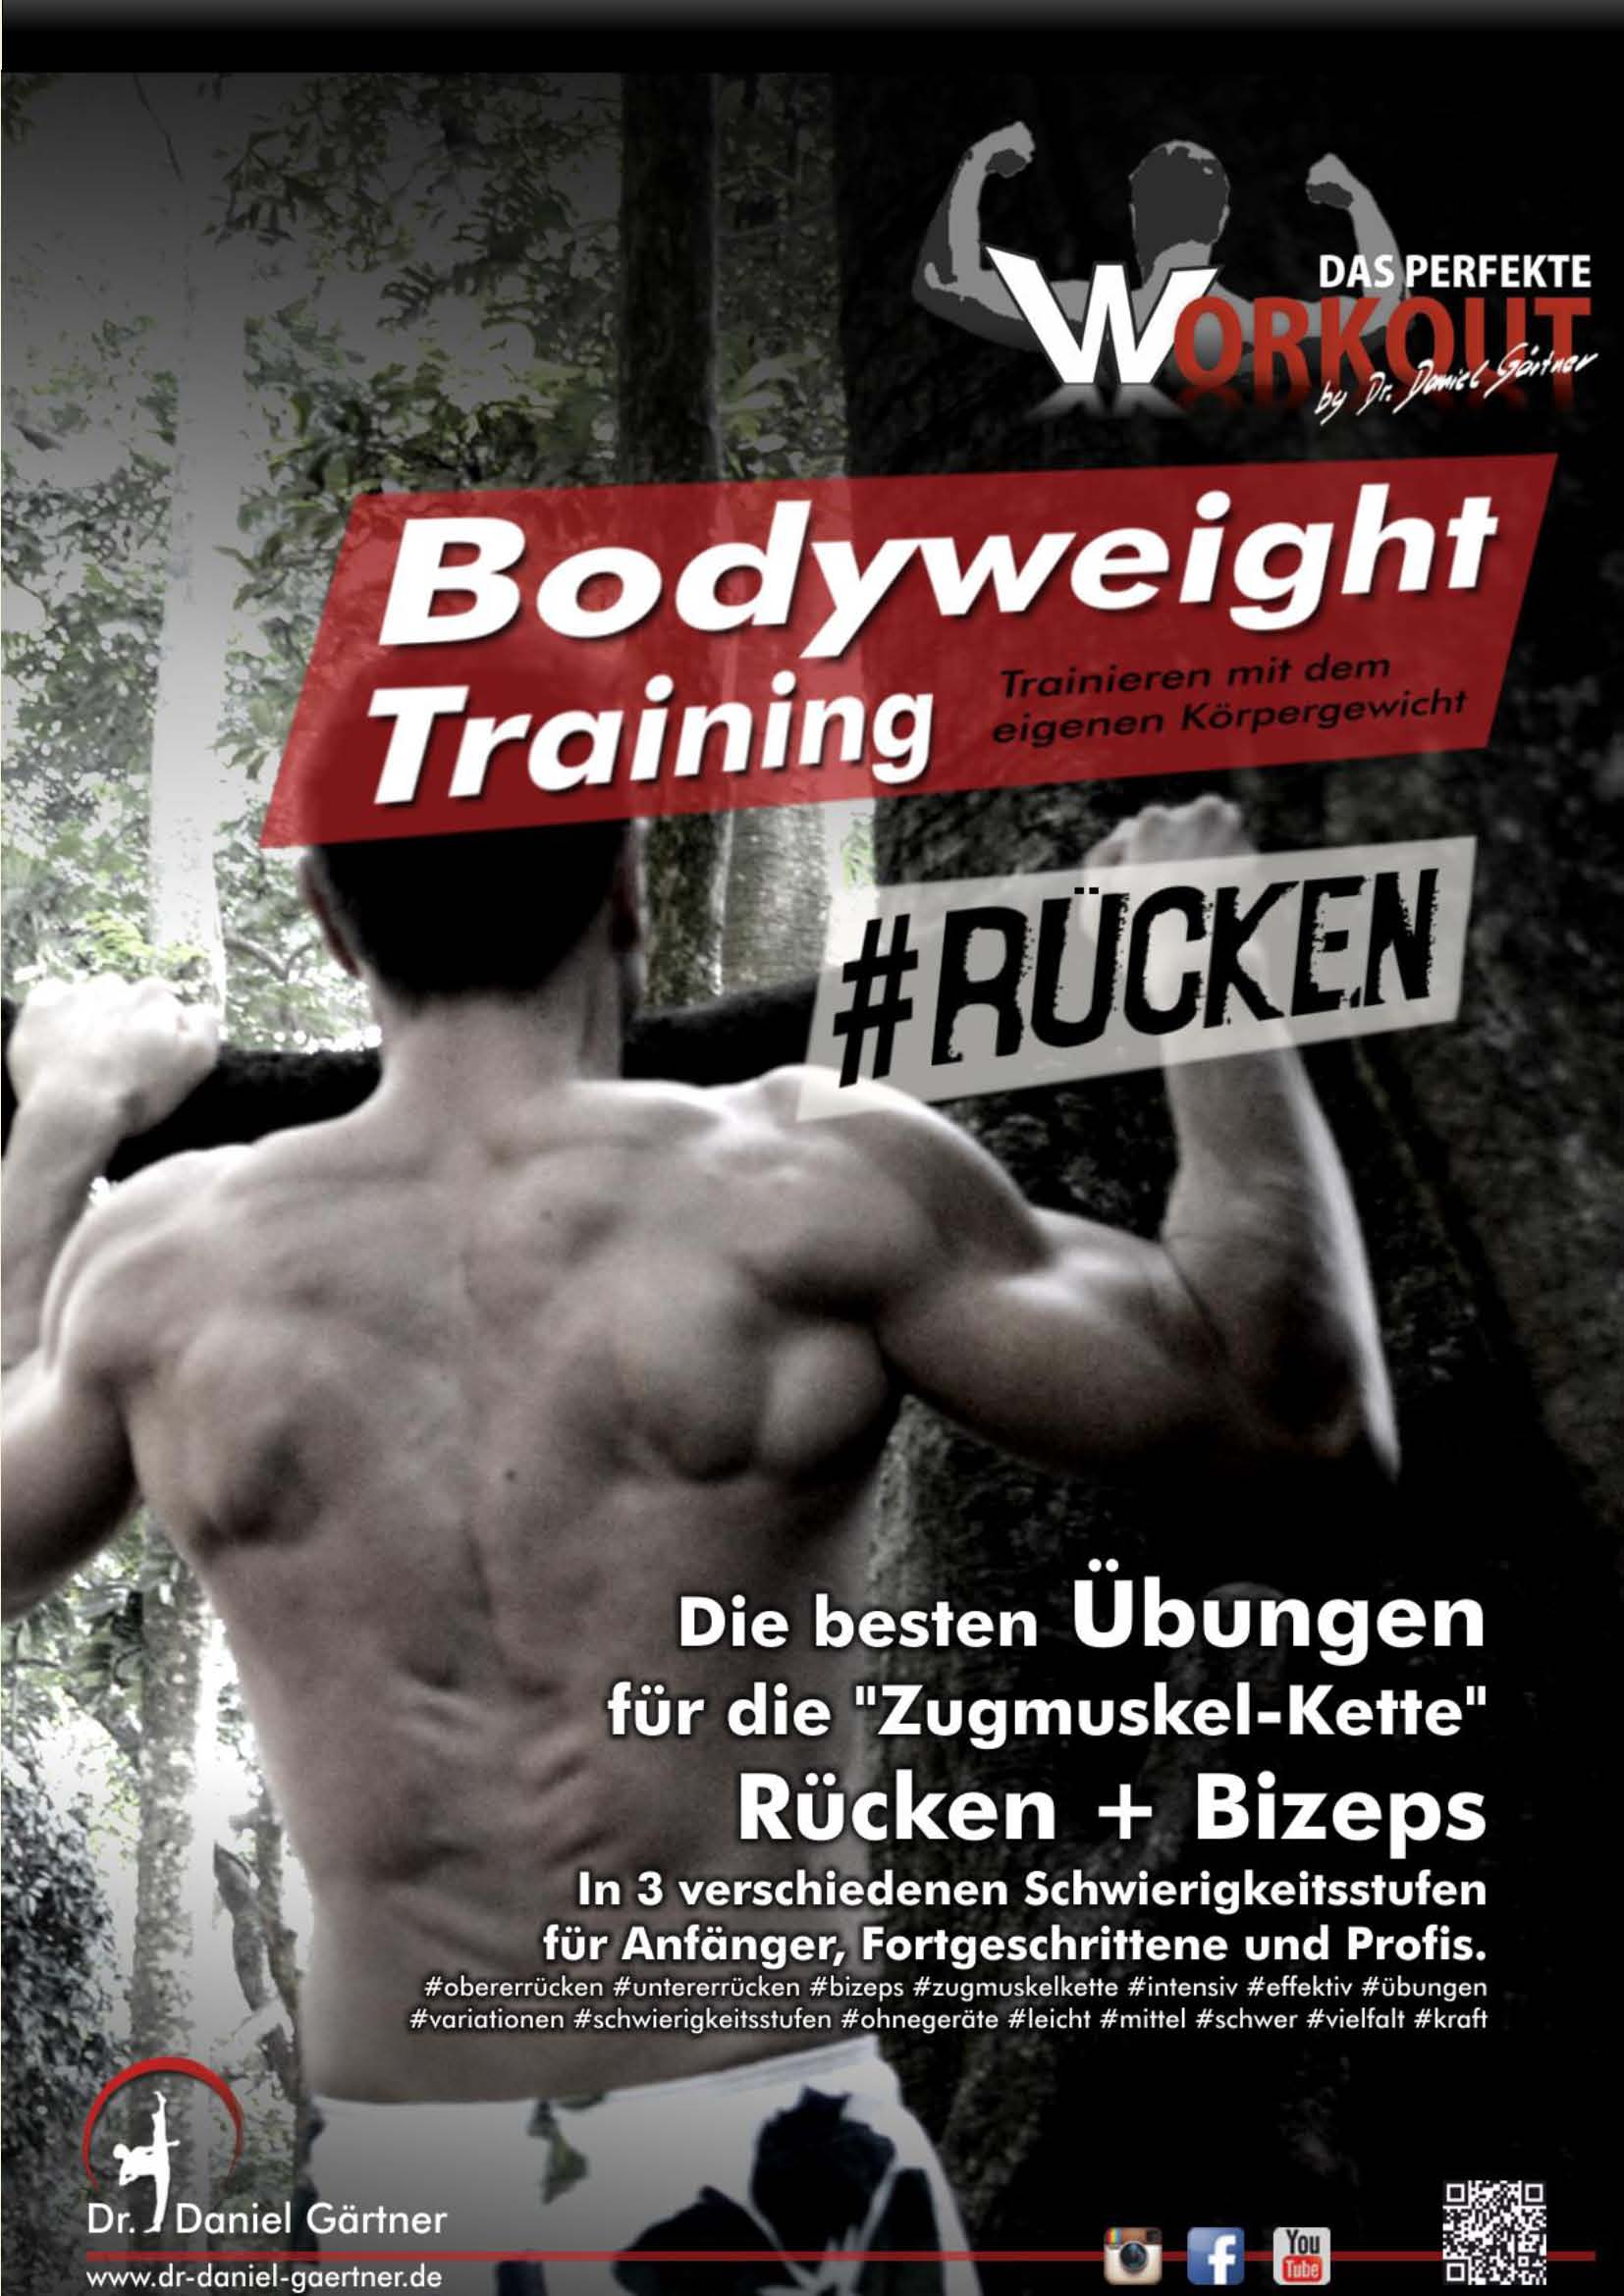 Bodyweight Training - Rücken